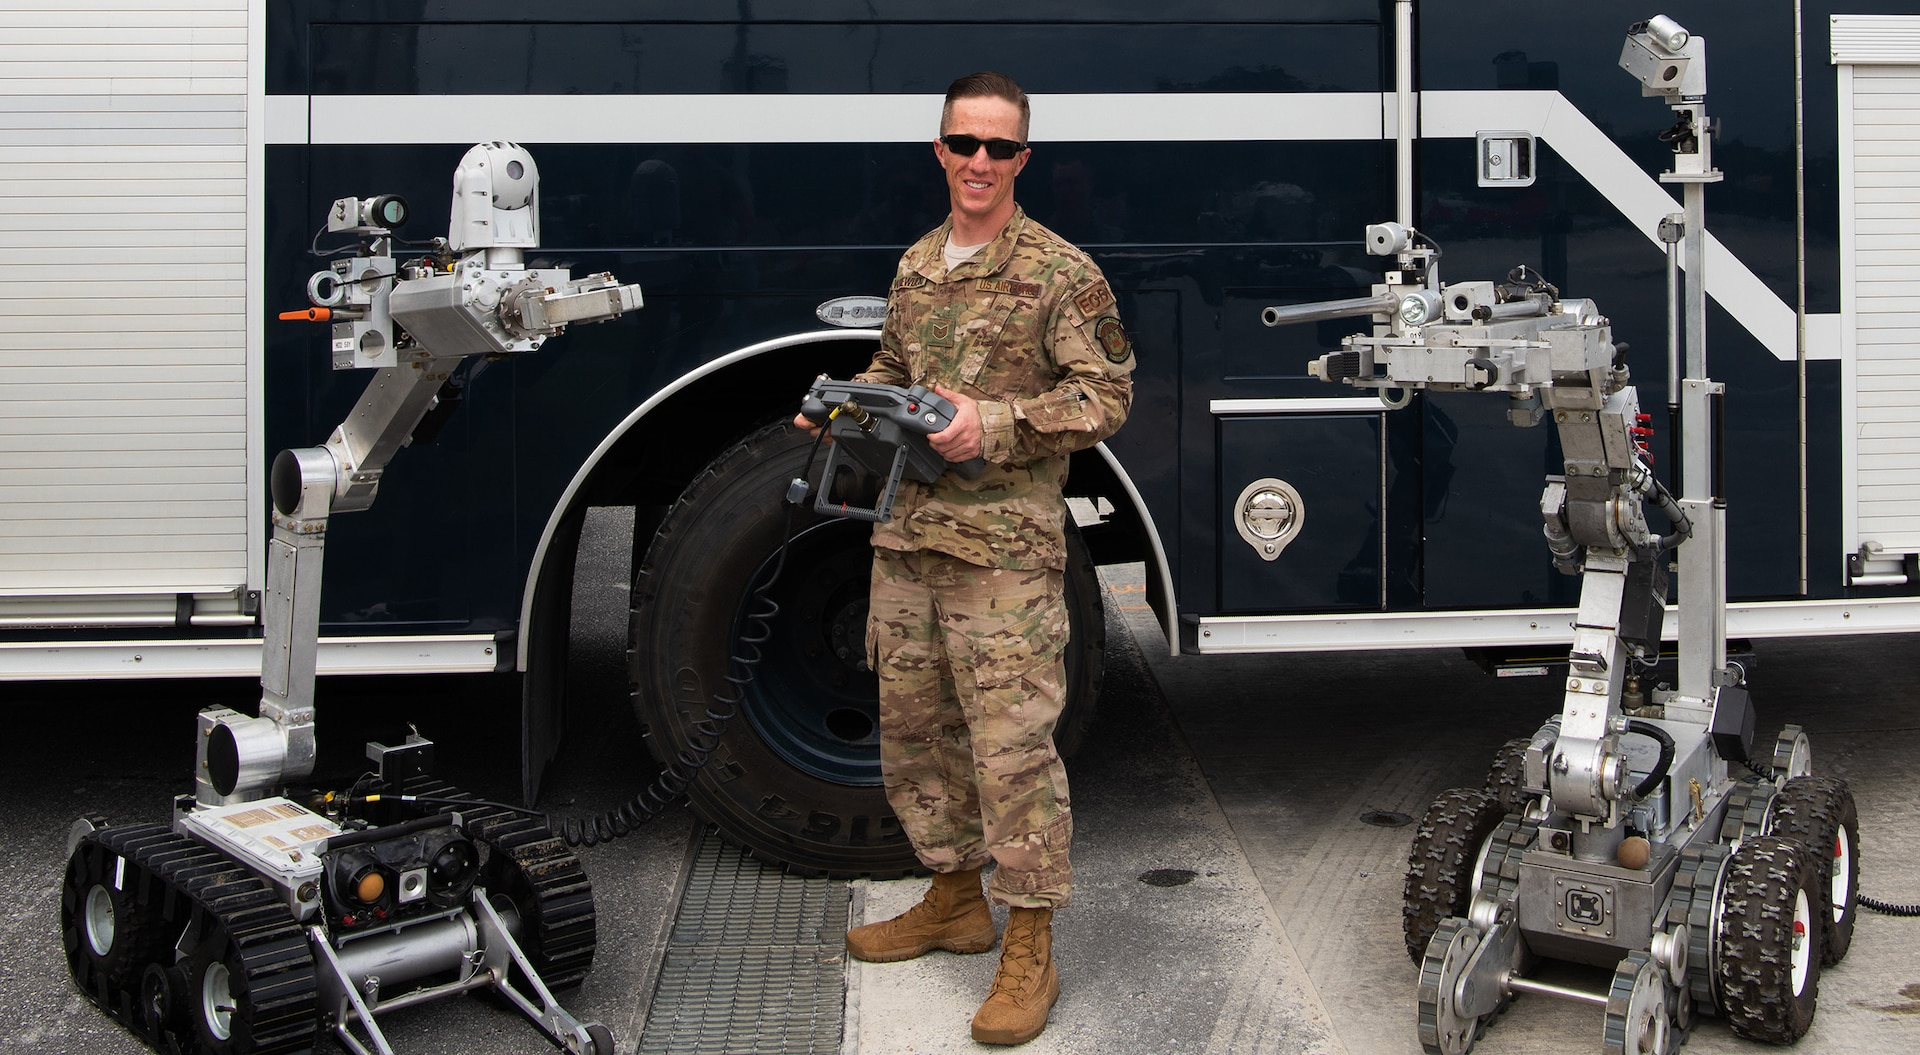 PACAF Explosive Ordnance Disposal Tech to Compete for Top Air Force Level Award